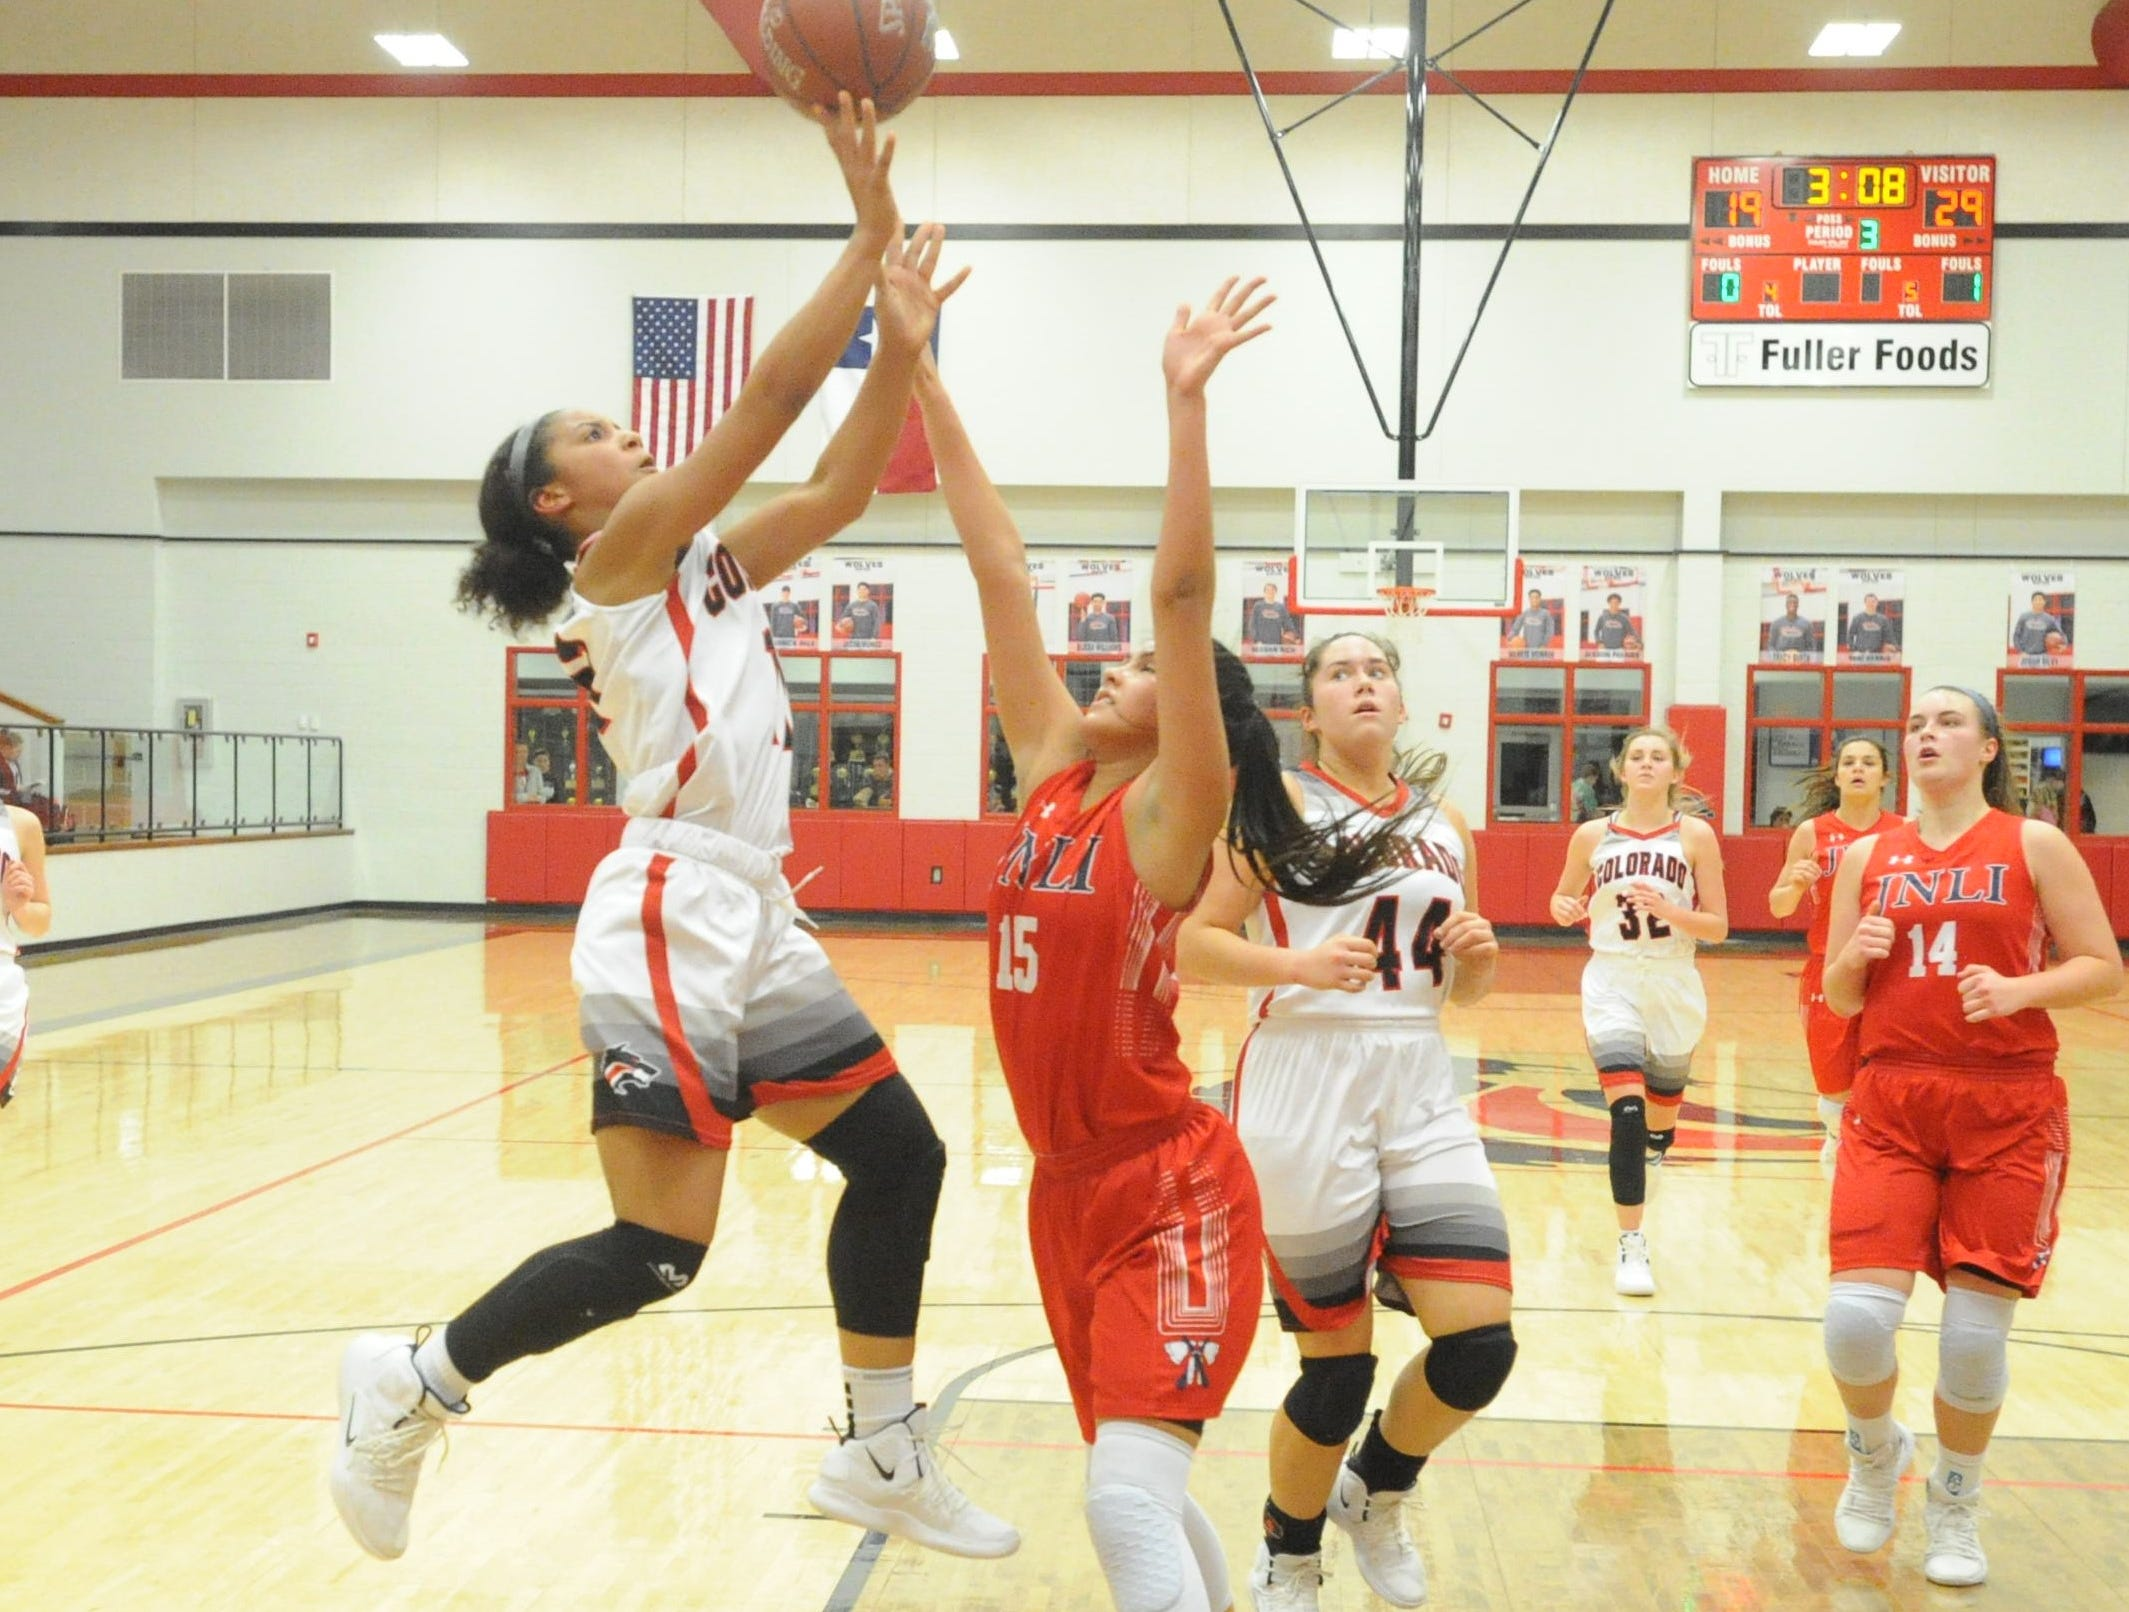 Colorado City guard Mia Monroe goes for a shot over Jim Ned's Alexis Espinosa.